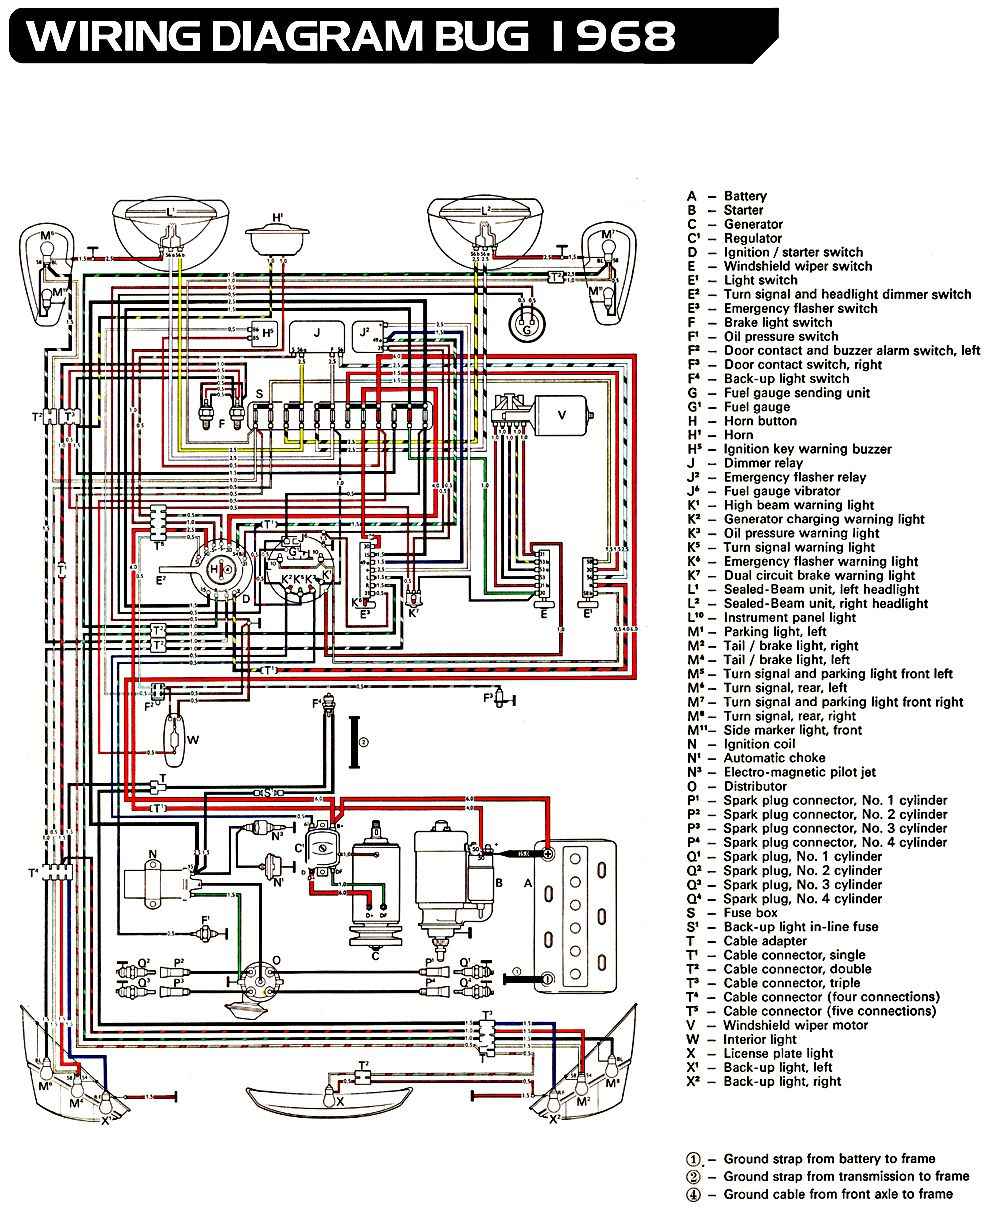 hight resolution of 68 vw bug fuse diagram wiring diagram vw bug ignition wiring diagram 73 vw wiring diagram